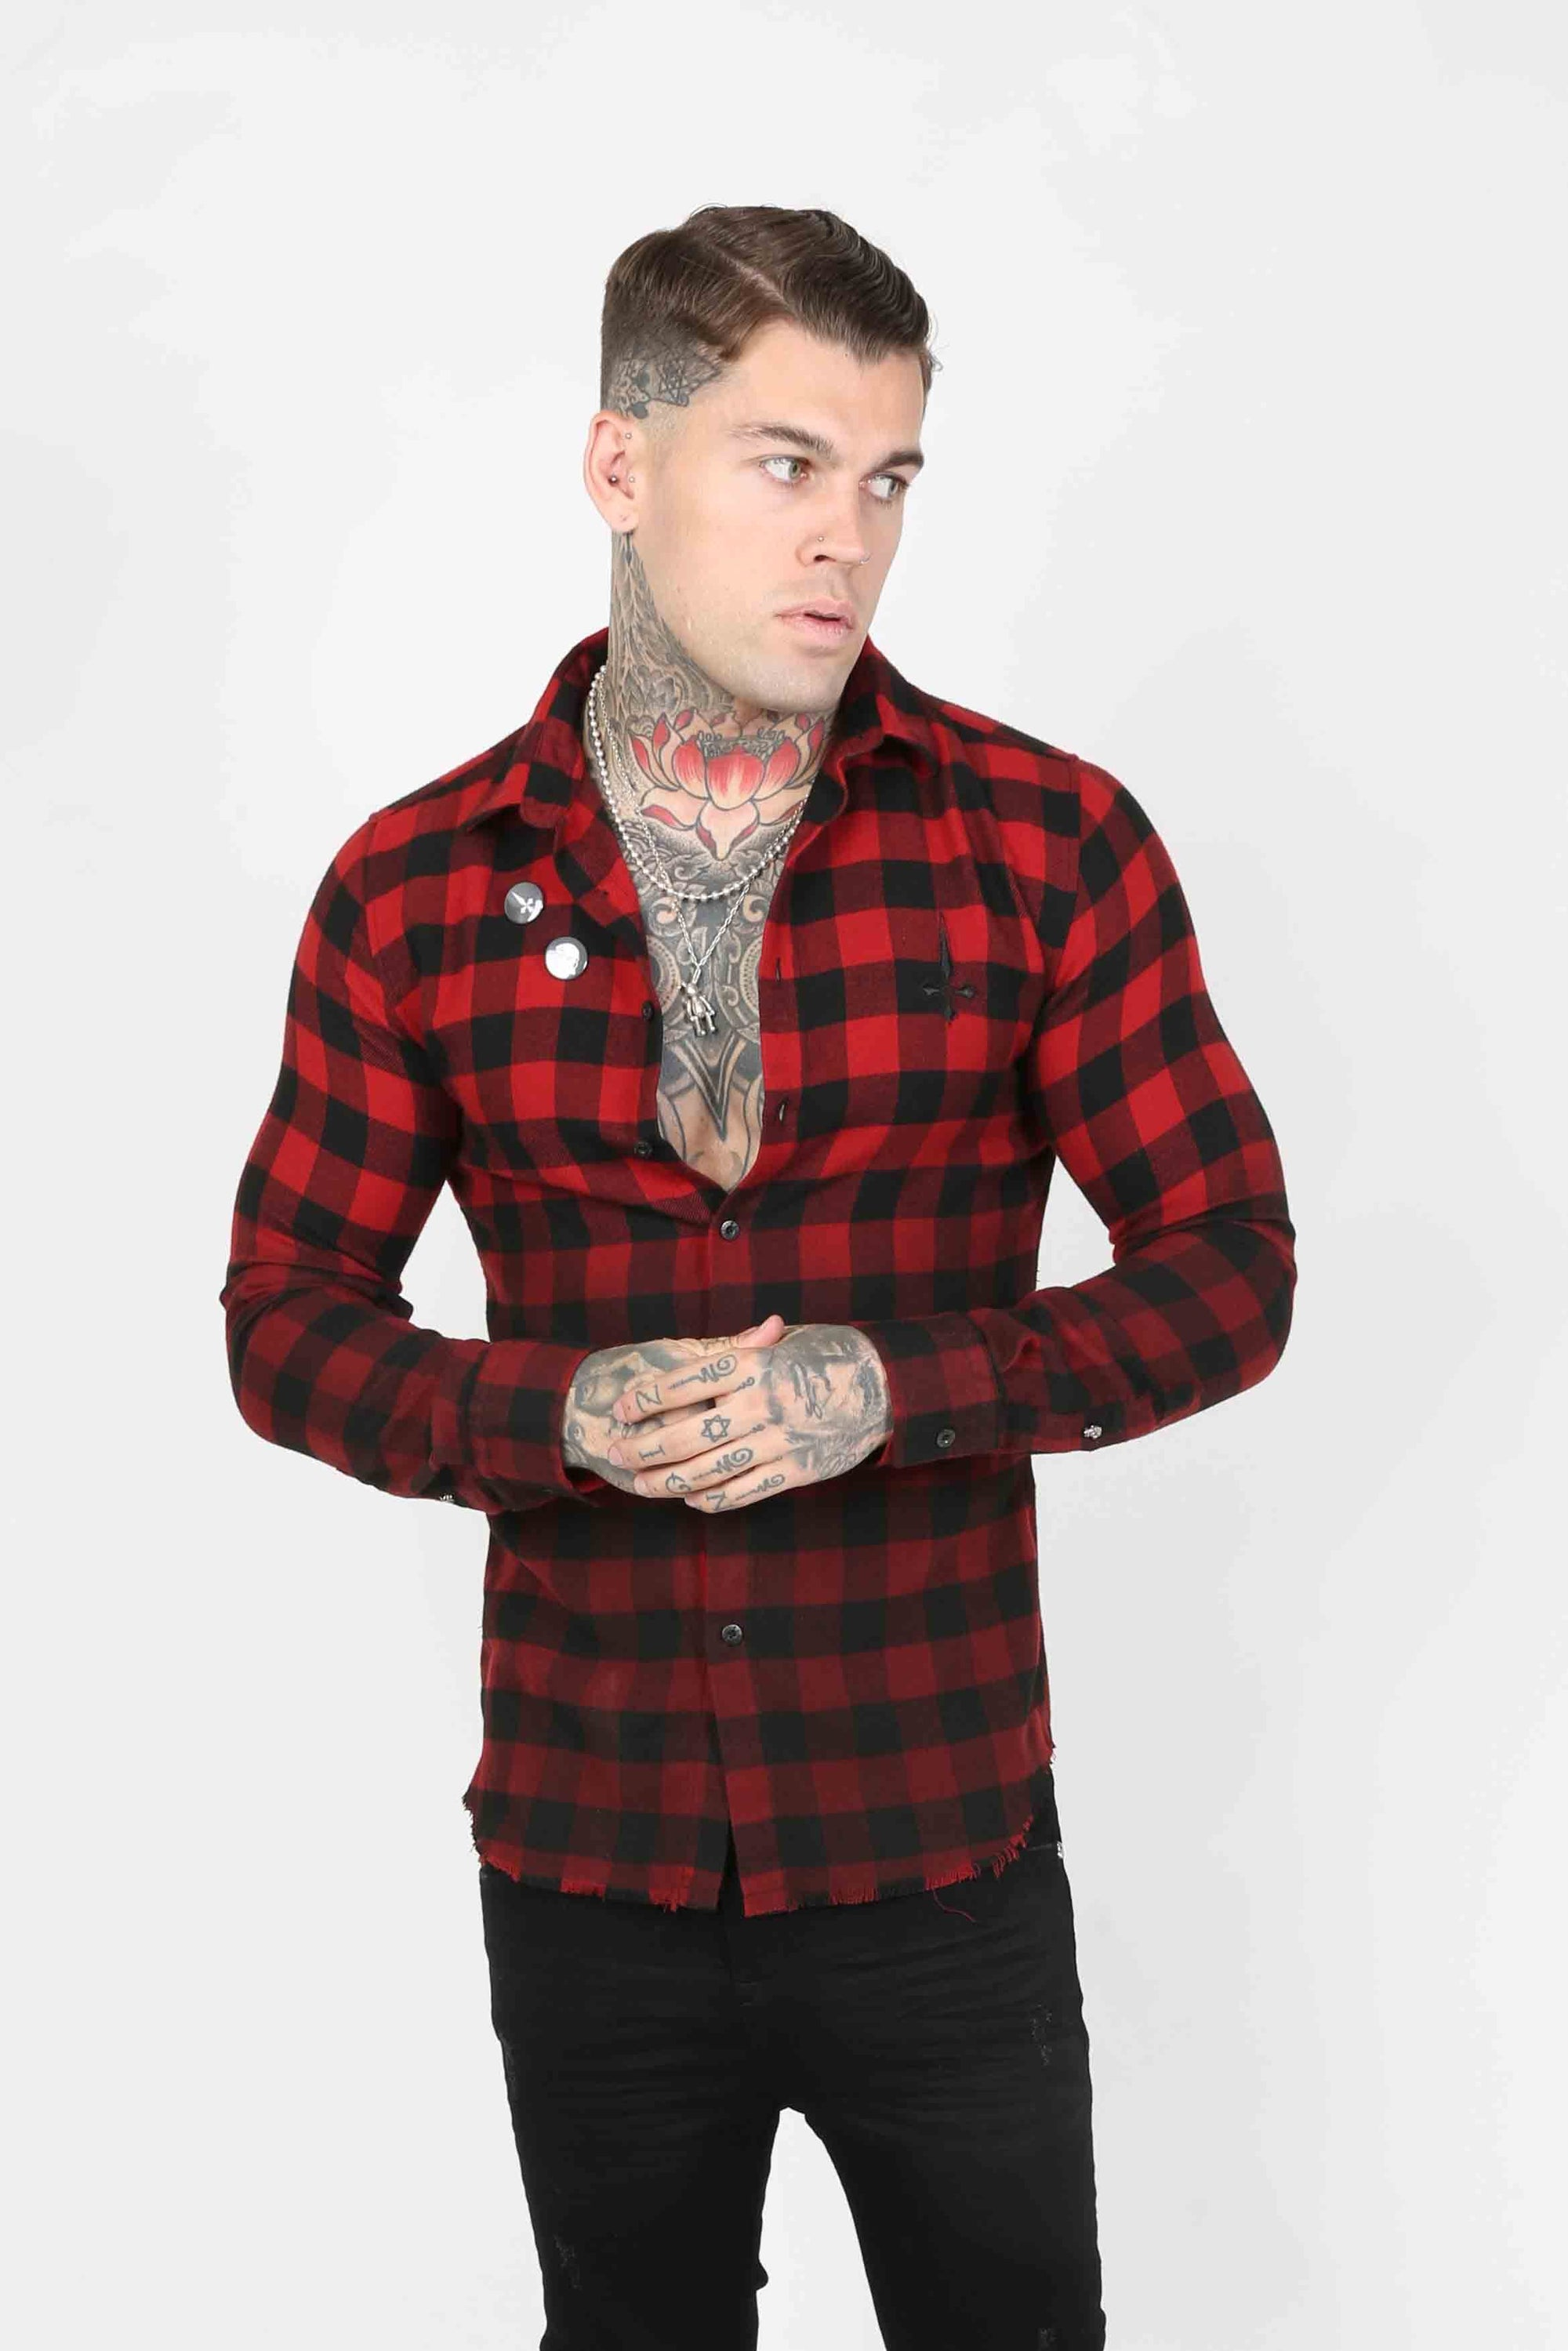 Squared Plaid Men's Shirt - Red - Judas Sinned Clothing